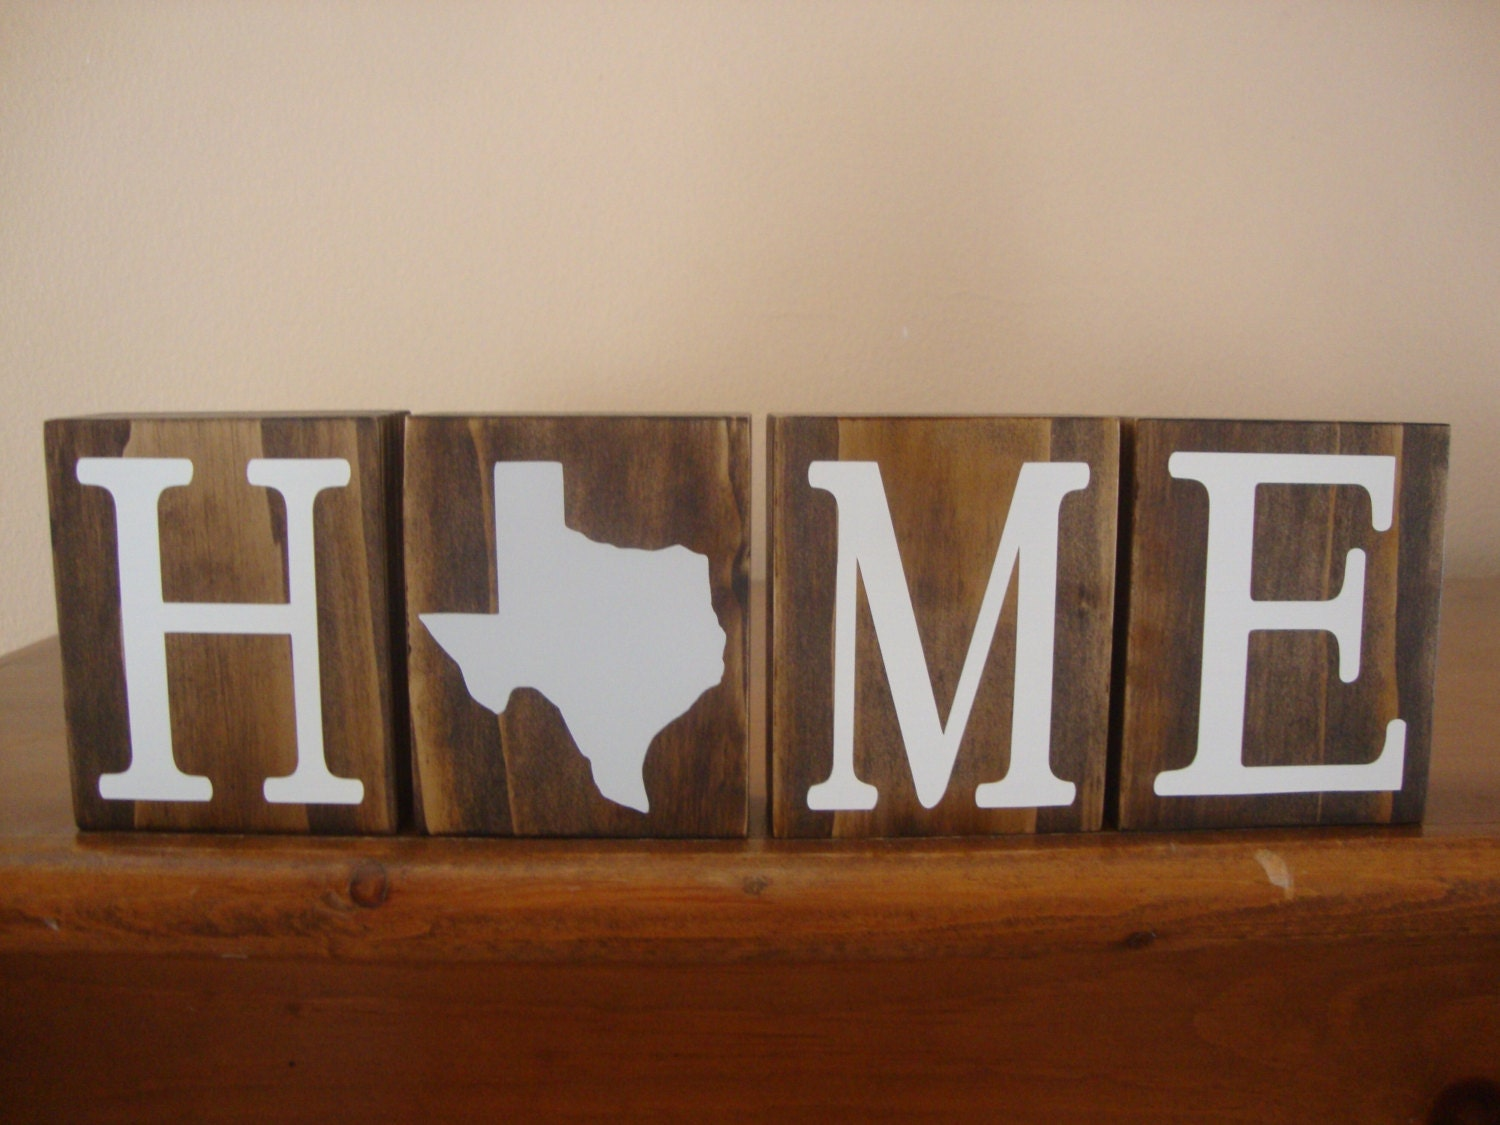 texas blocks home blocks texas decor home state decor texas state wood art rustic personalized home decor by